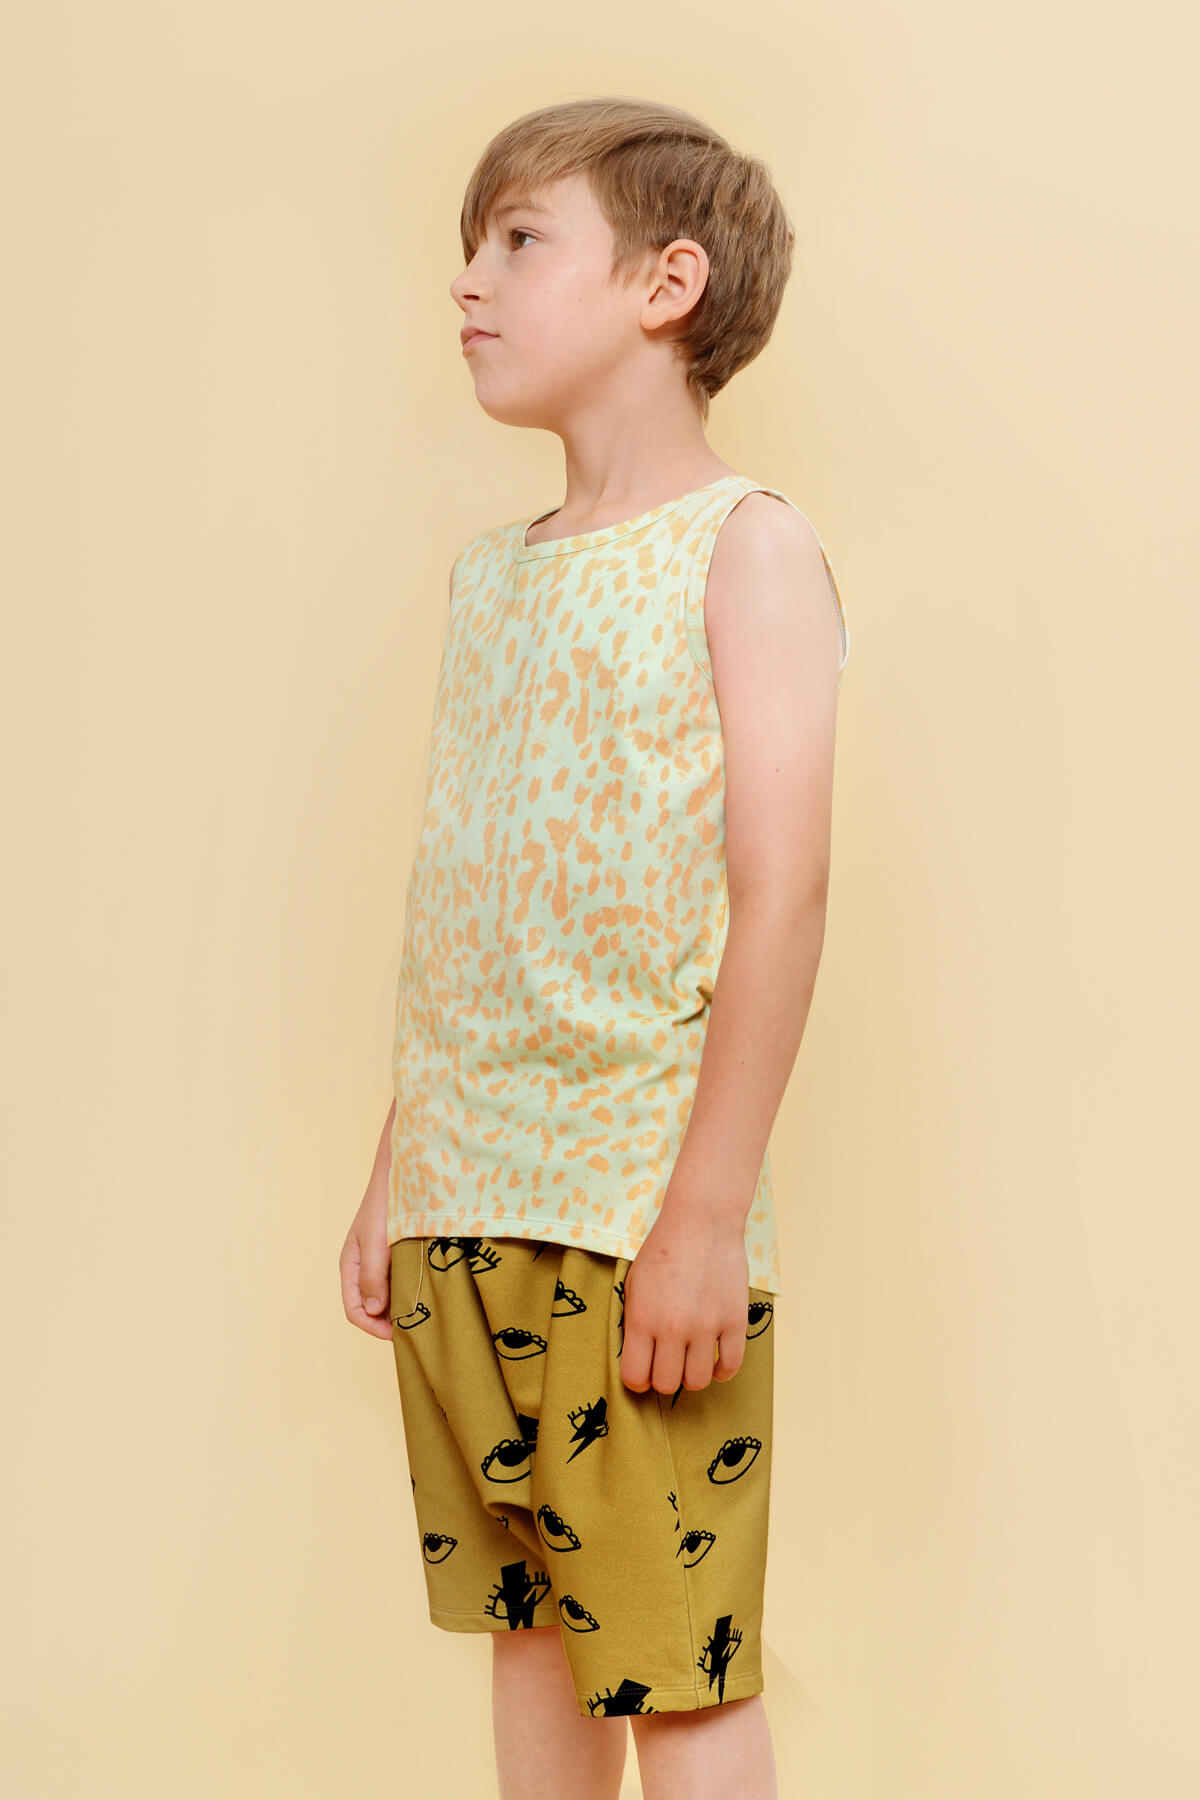 unisex kids fashion | organic | certified | Little Man Happy